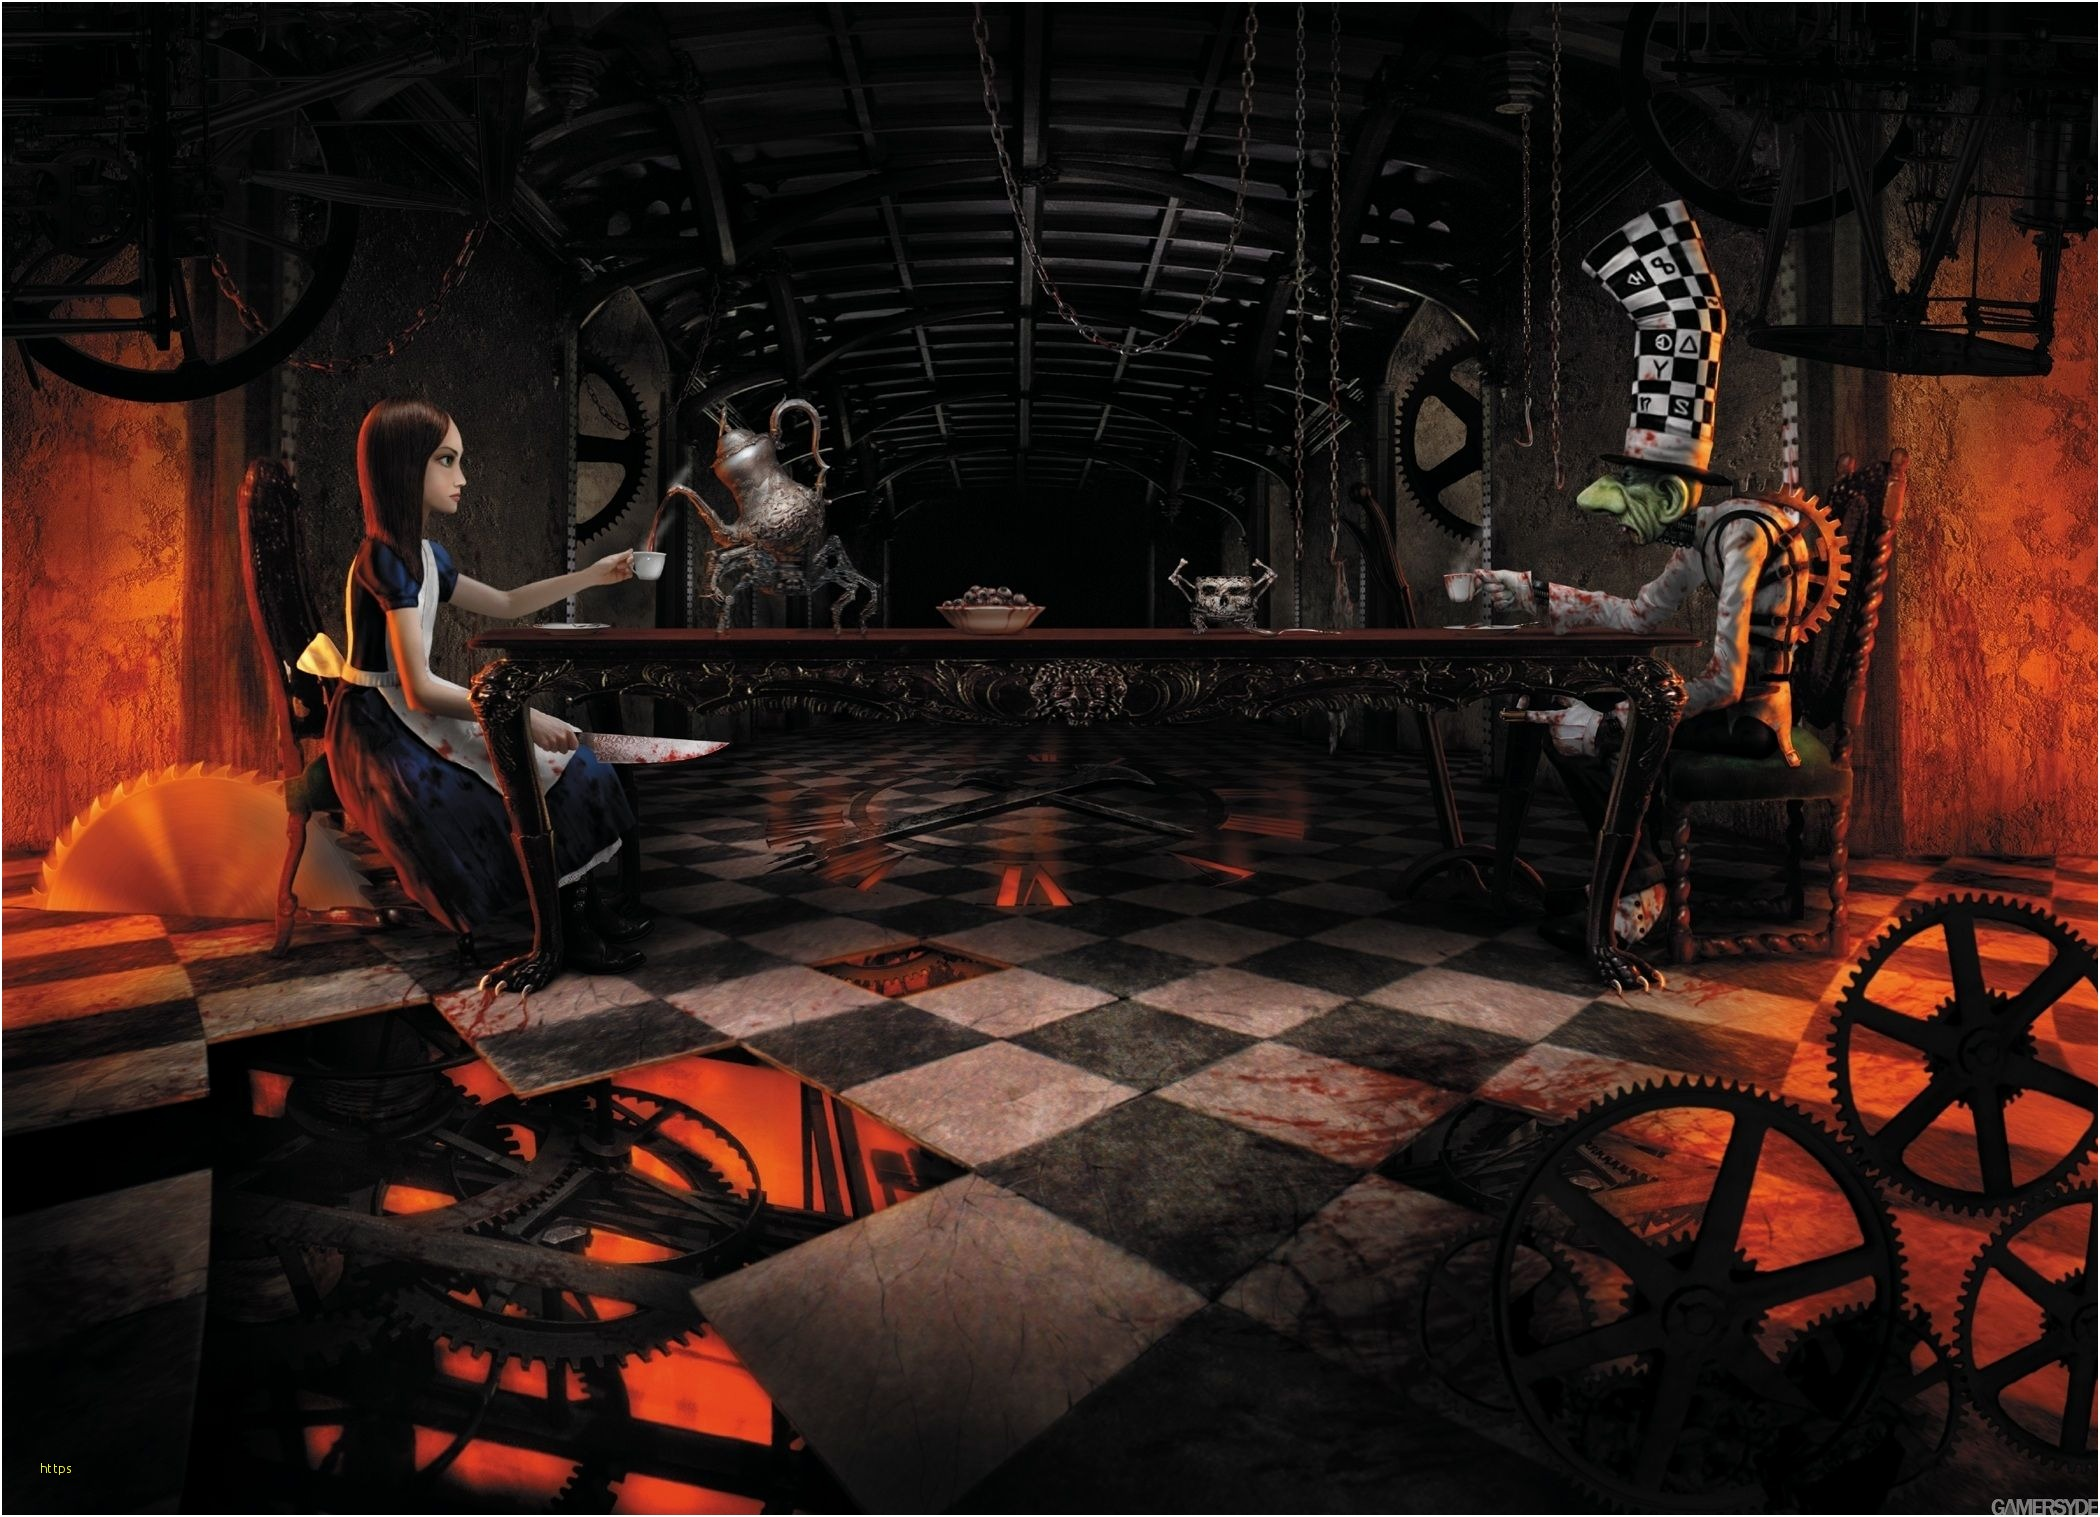 Alice Madness Returns Wallpaper Awesome Alice Madness Dark Alice In Wonderland Background 939041 Hd Wallpaper Backgrounds Download